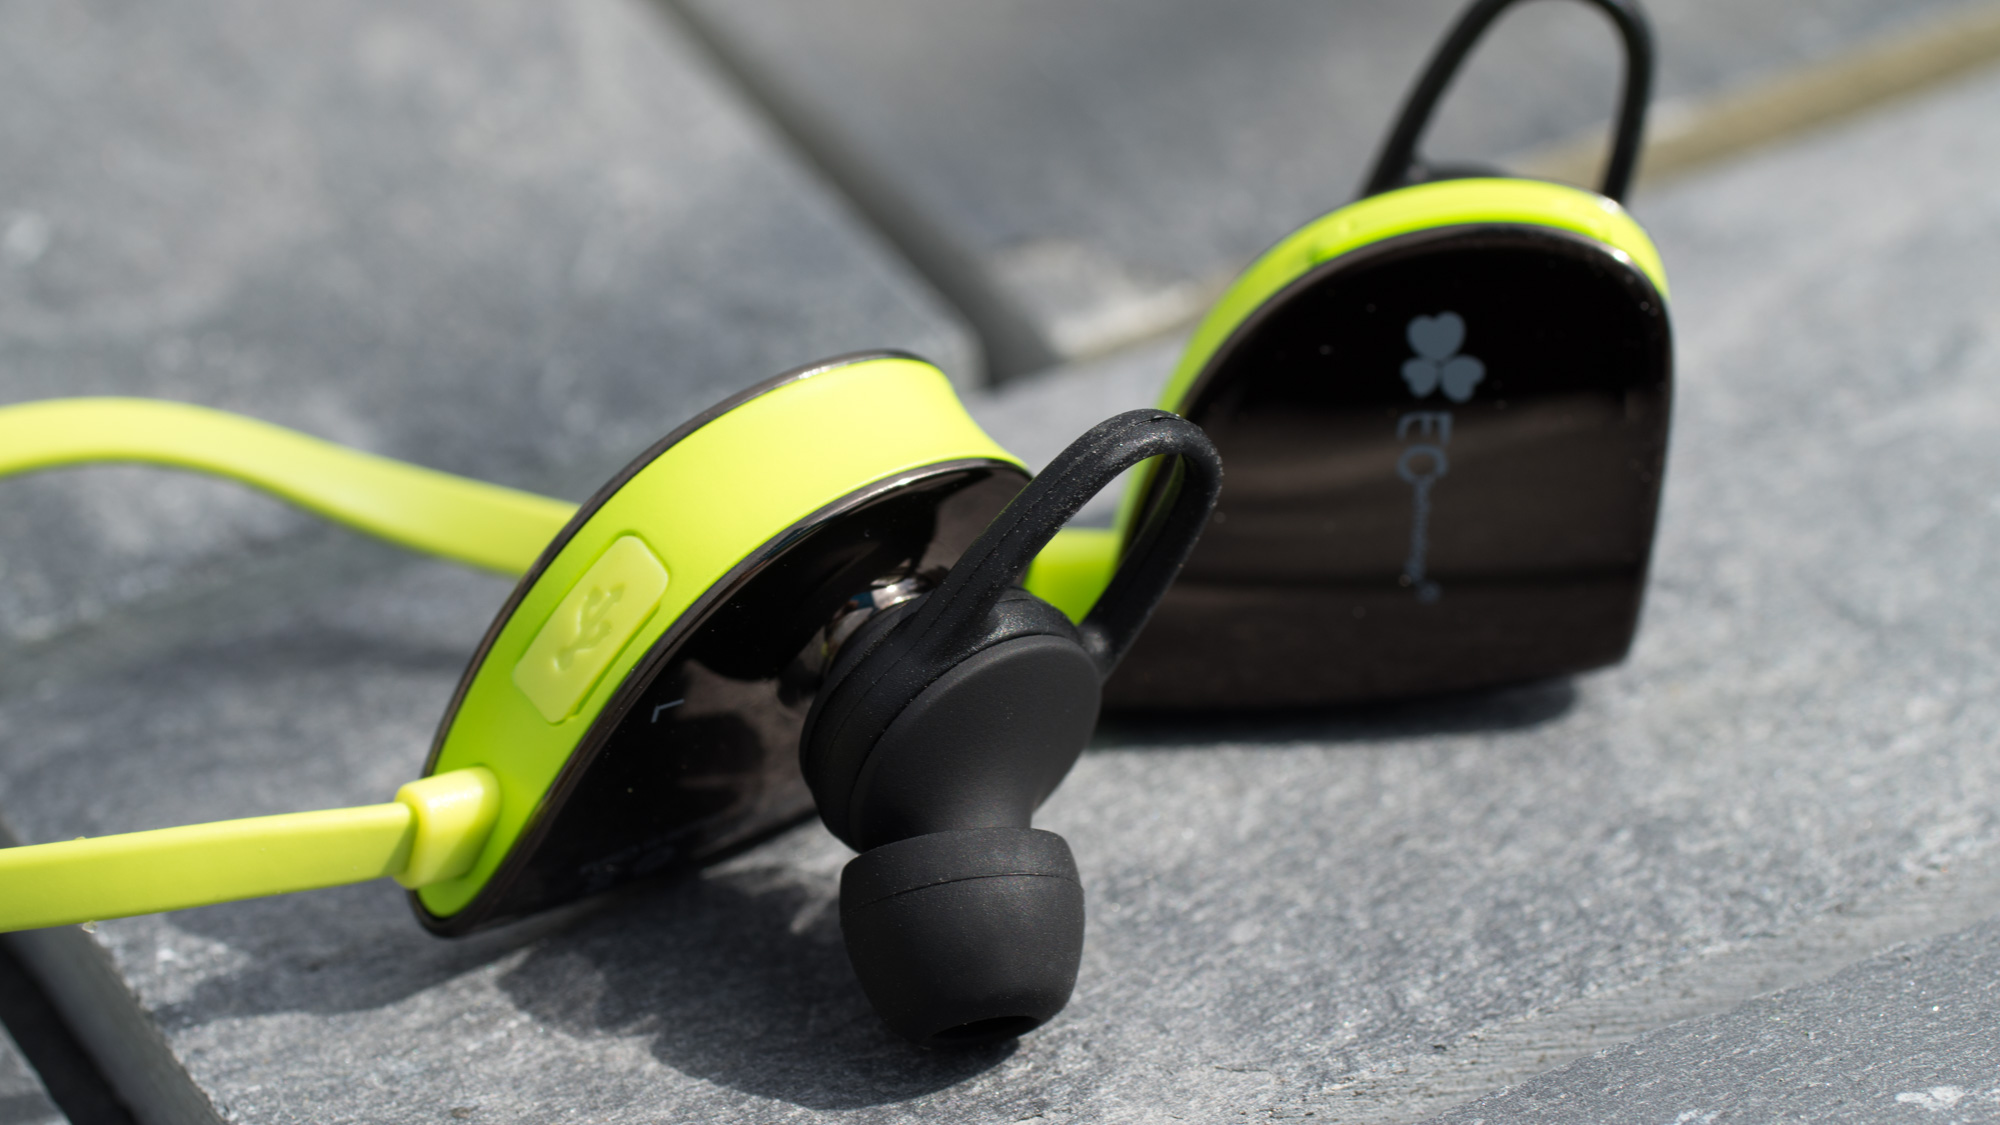 Review der EC Technology Bluetooth 4.1 wireless In-Ear-Kopfhörer Ohrhörer Kabellos Audio Musik Test